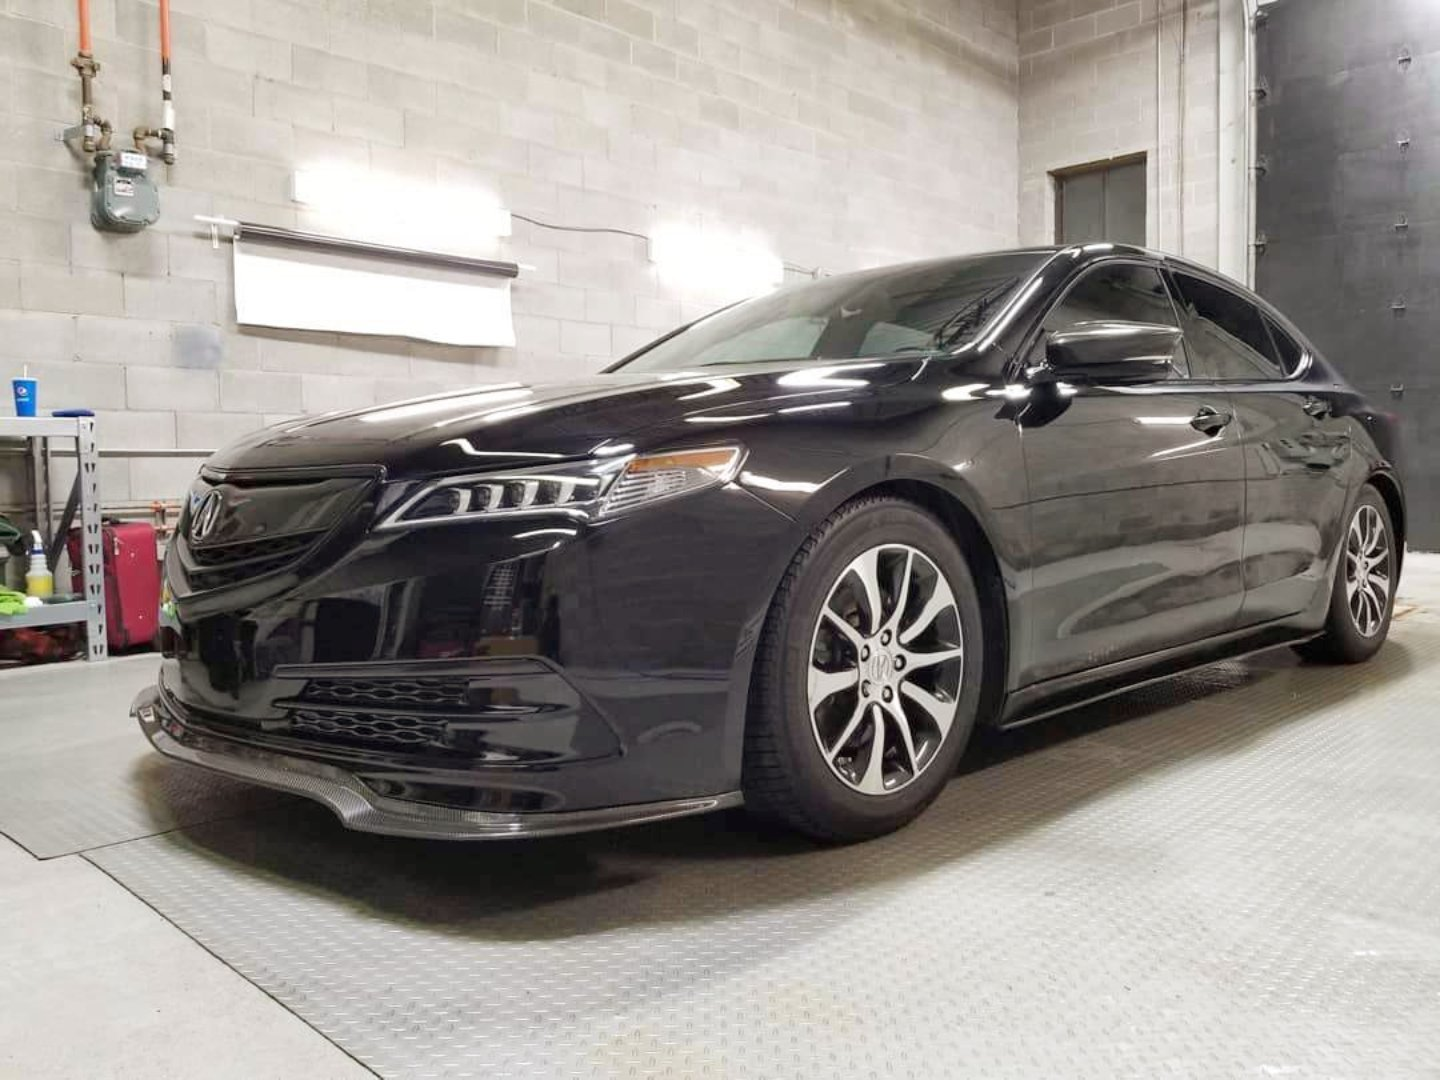 BESPOKE FRONT LIP (FIRST GEN ONLY) -  - Yomato Carbon - Montreal Canada